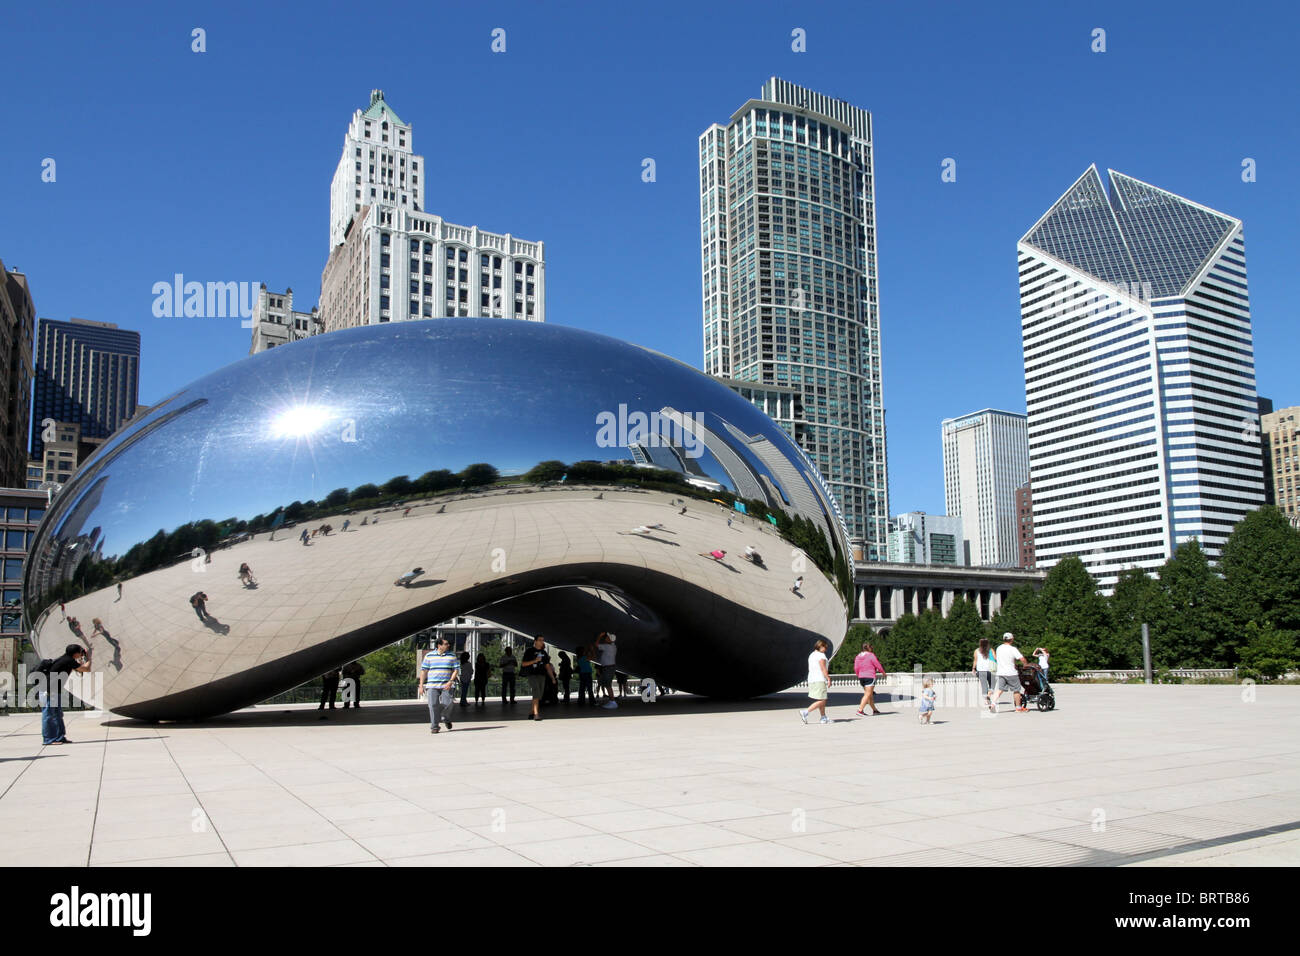 Millennium Park in Chicago with Reflective Sculpture - Stock Image